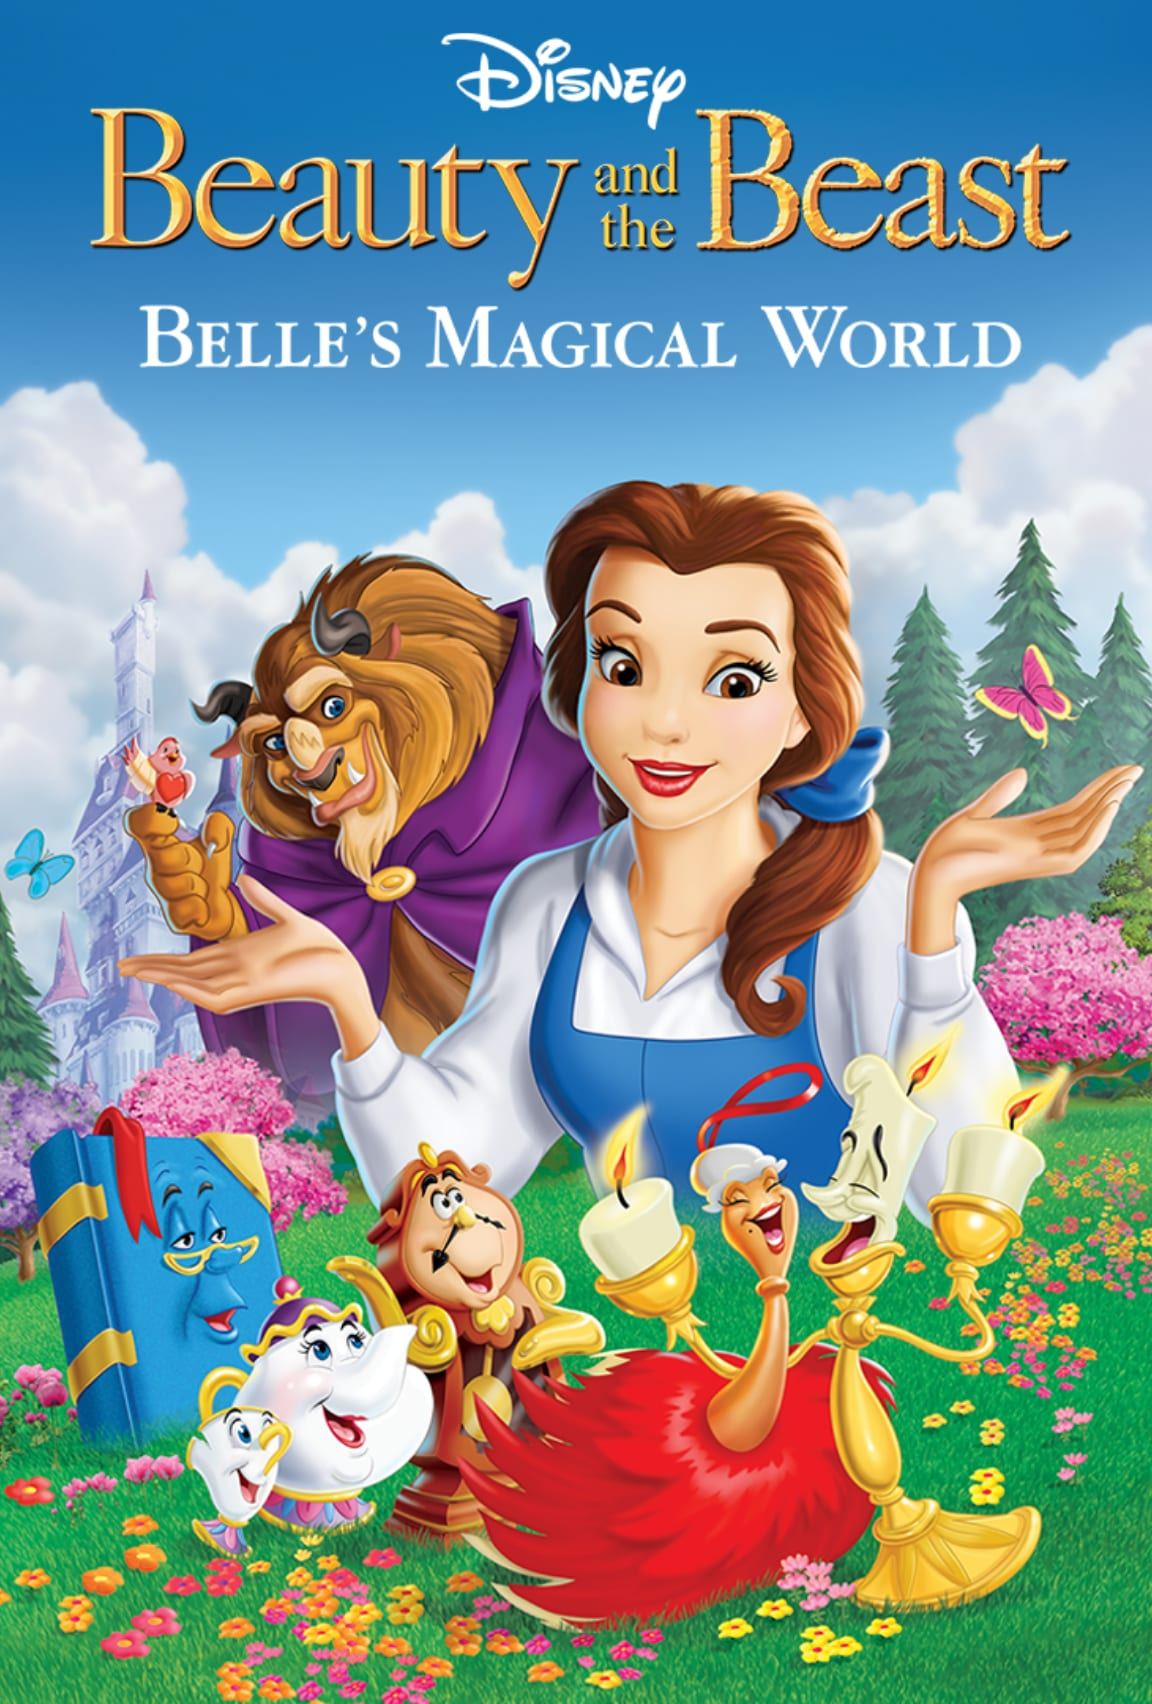 Beauty and the Beast: Belle's Magical World (1998)